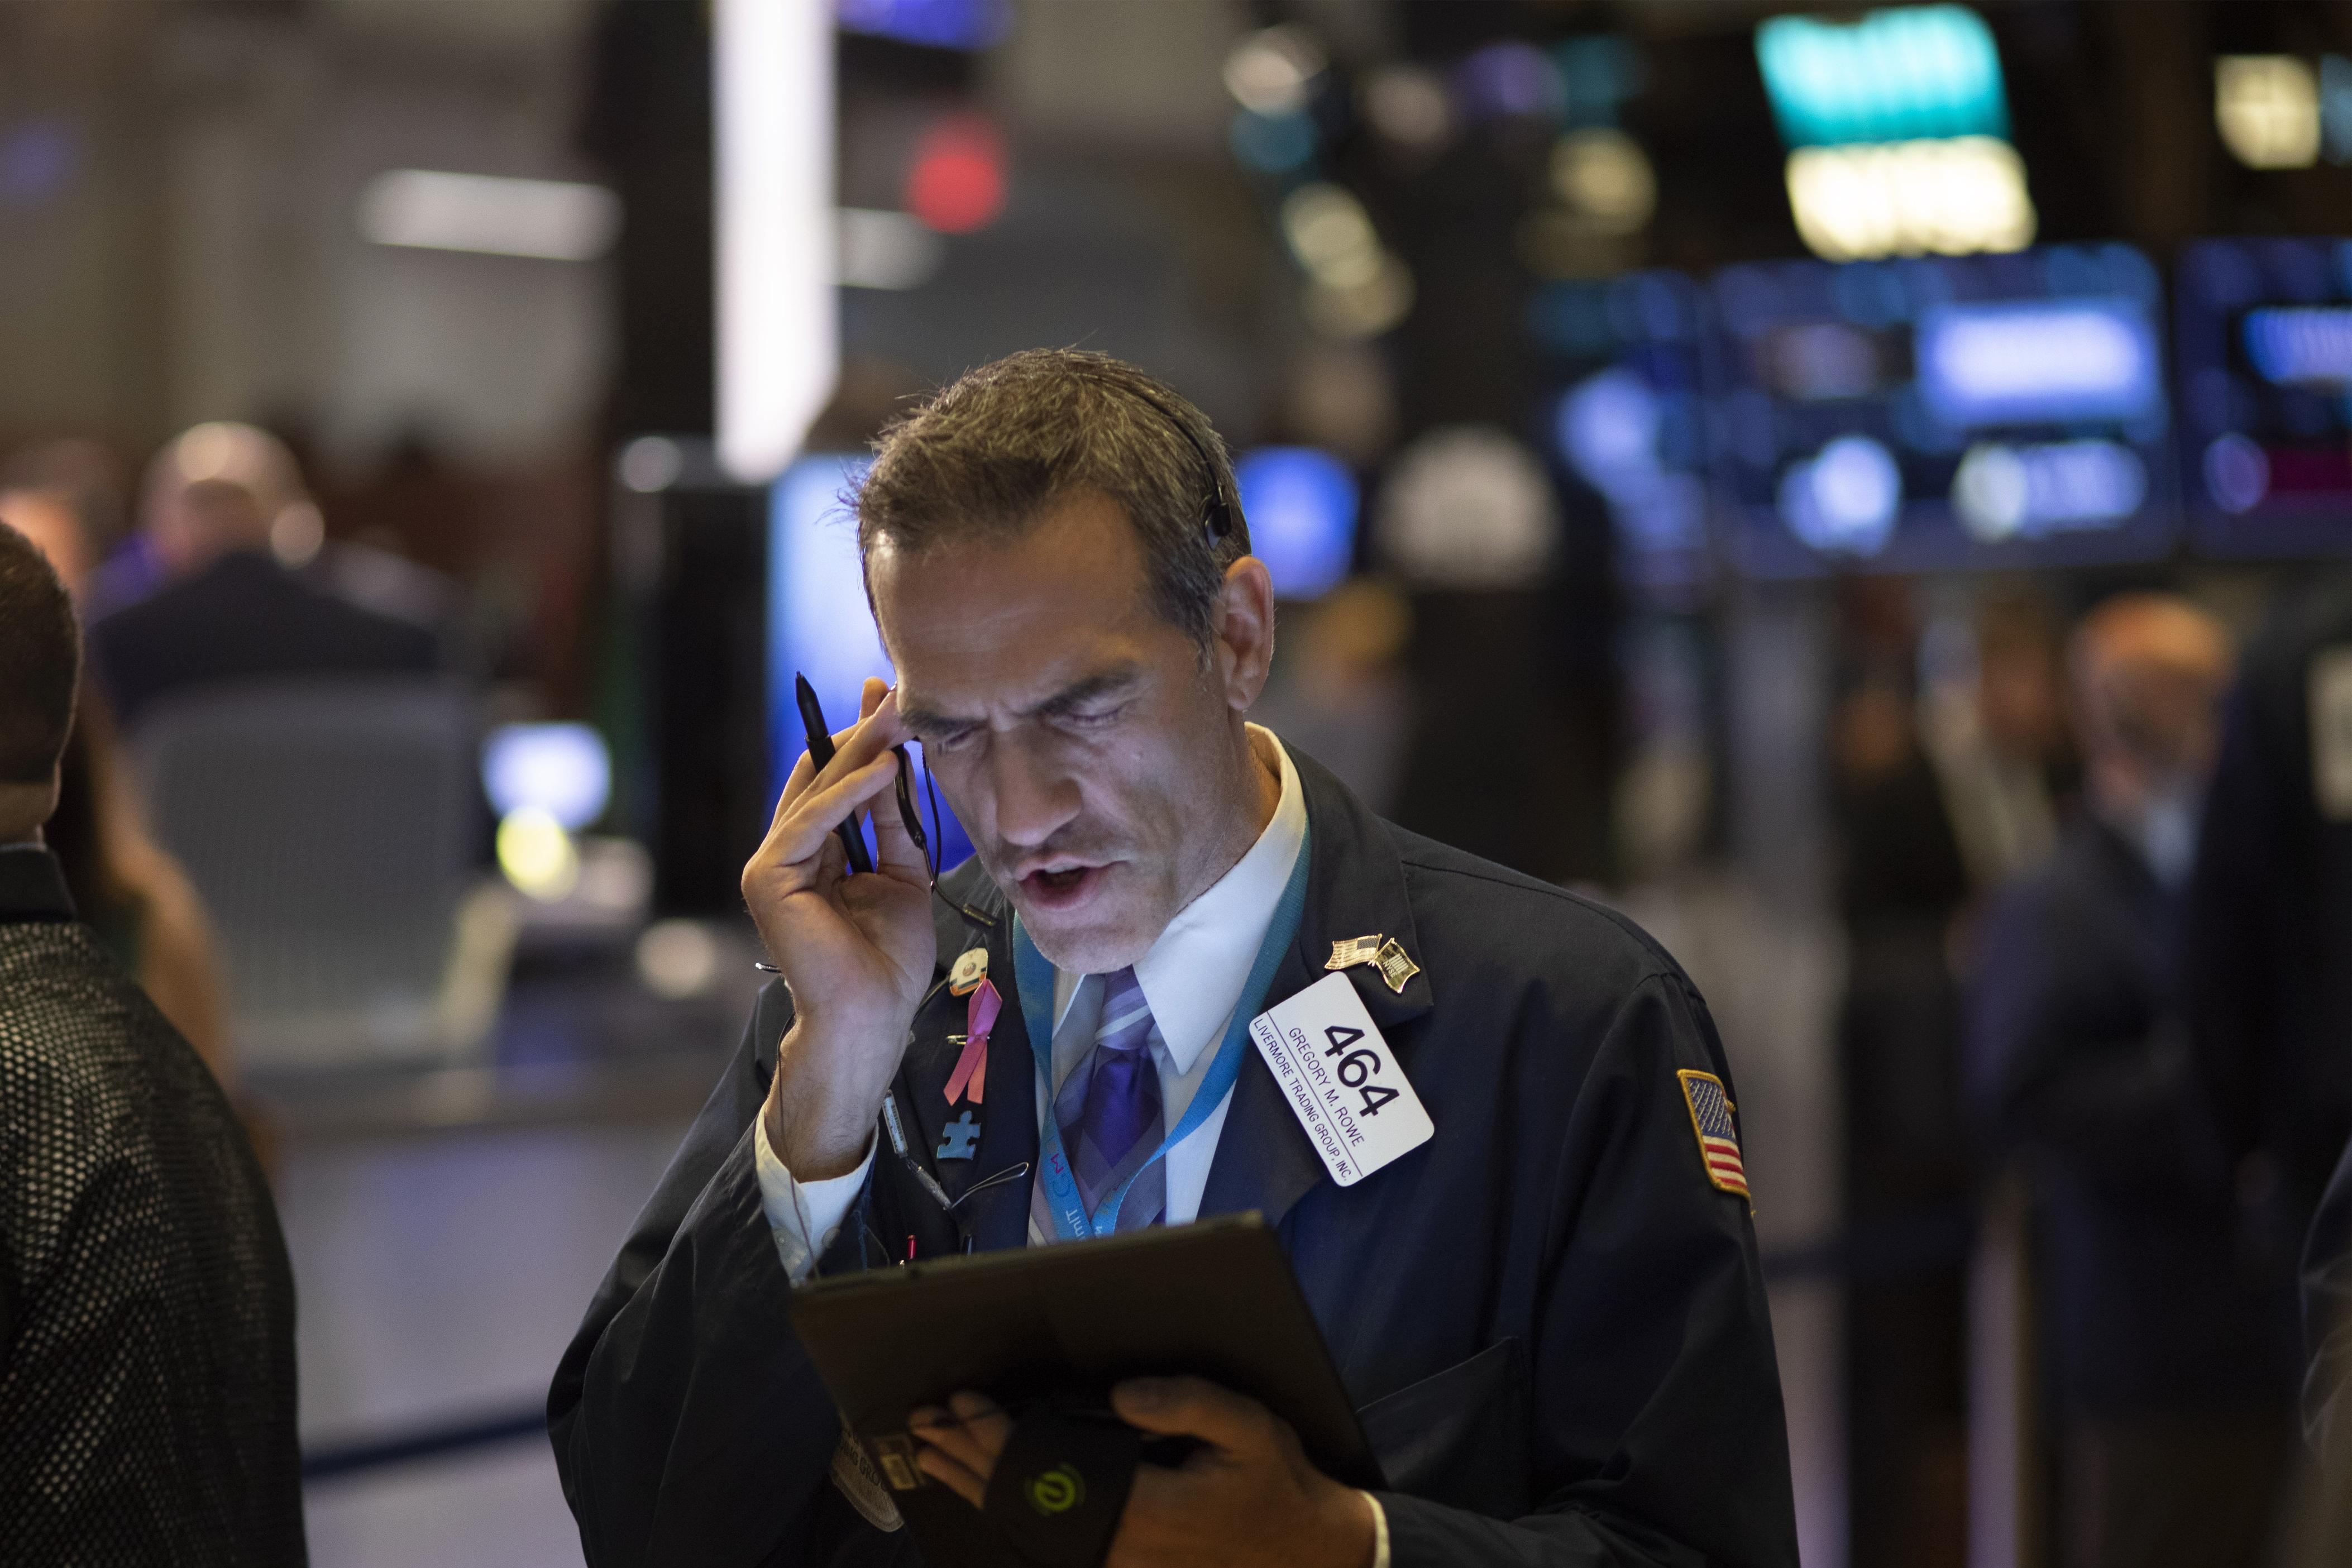 Markets Right Now: Stocks open higher on Wall Street